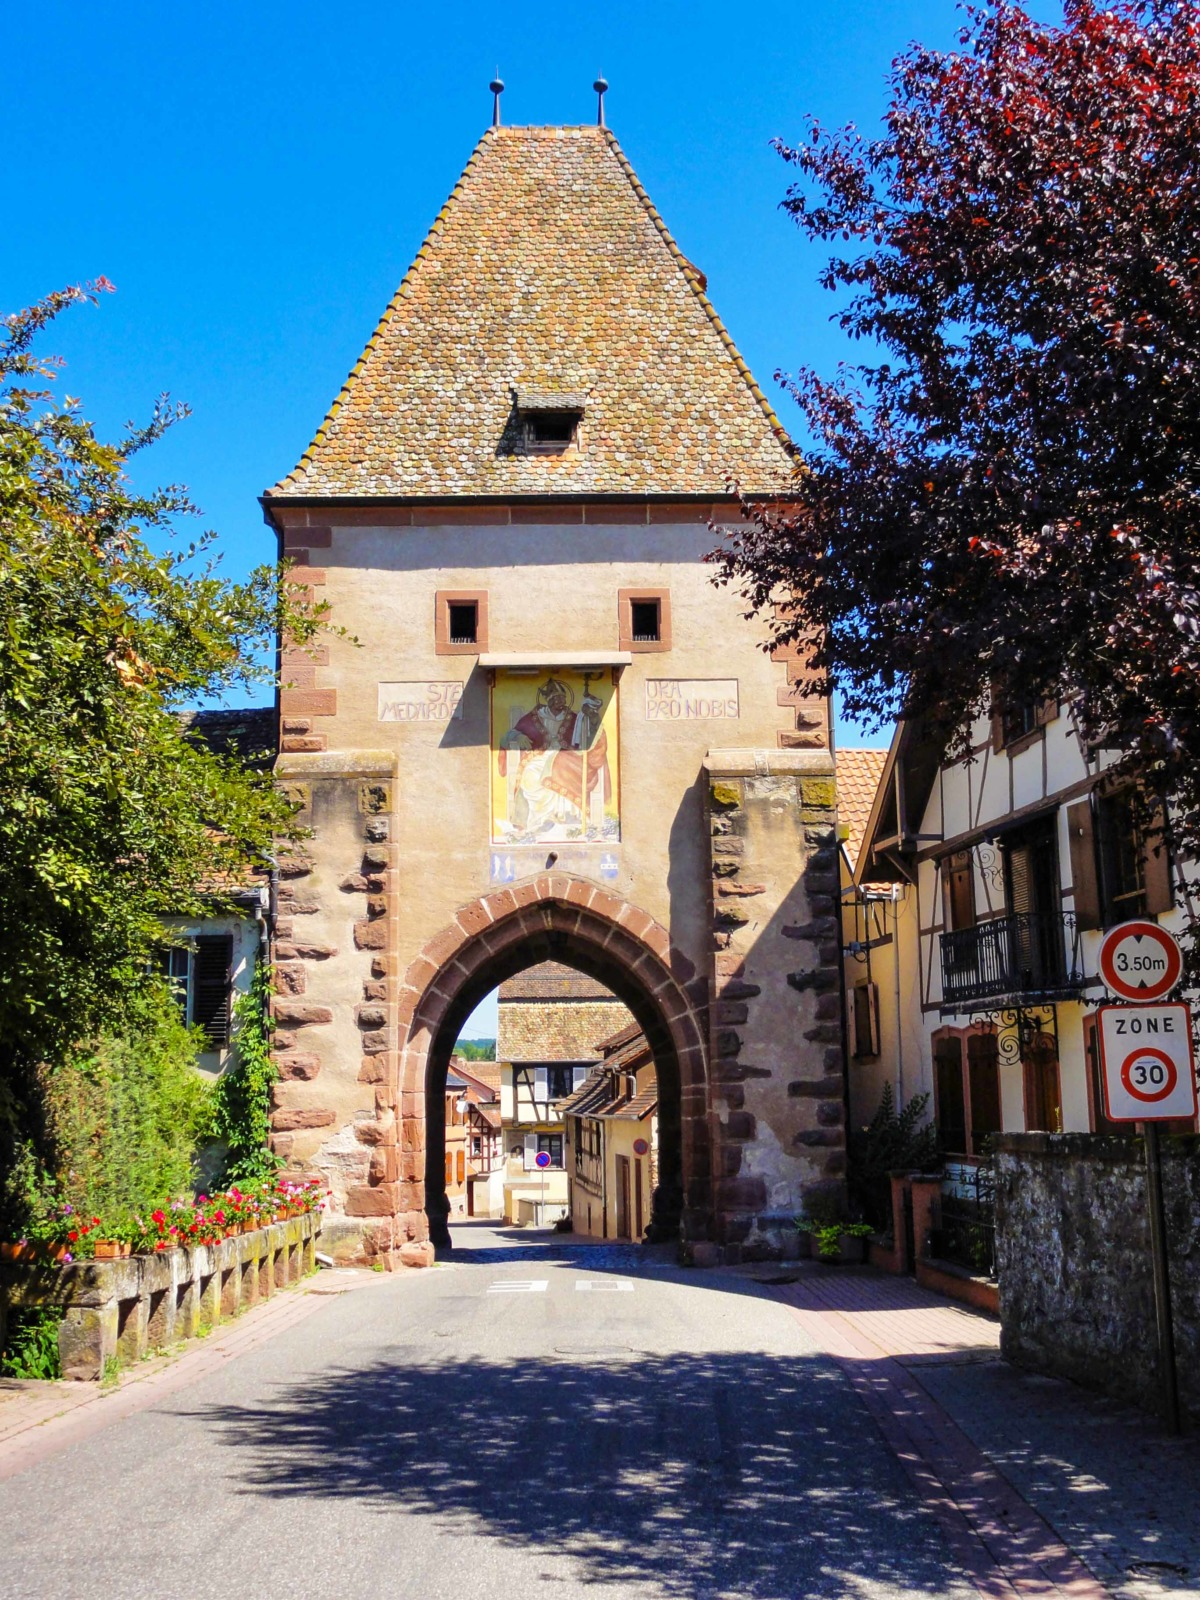 Fortified City Gates of Alsace - Porte Haute, Bœrsch © Ralph Hammann - licence [CC BY-SA 4.0] from Wikimedia Commons